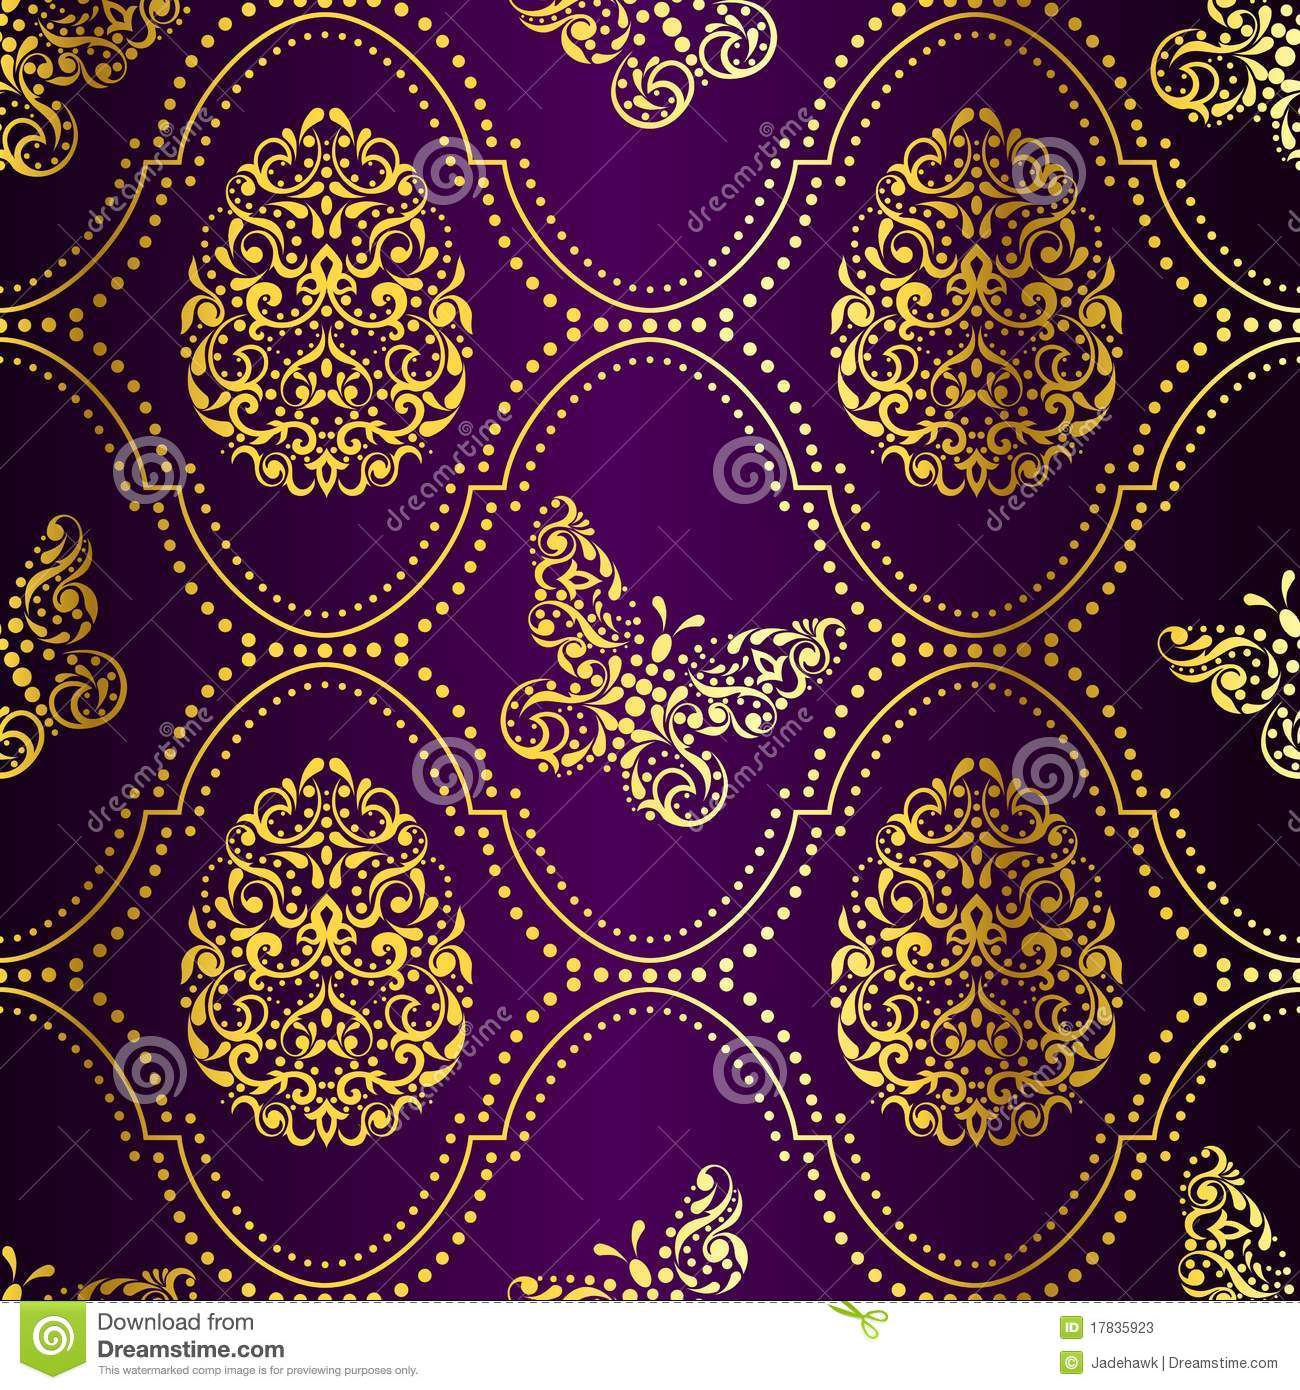 Purple Gold Wallpaper  Wallpapersafari. Design Ideas For Kitchen Cabinets. Kitchen Maid Pantry Cabinet. Buy Discount Kitchen Cabinets. Pics Of Painted Kitchen Cabinets. Kitchen Cabinets Oahu. In Cabinet Trash Cans For The Kitchen. New Kitchen Cabinet Doors And Drawer Fronts. Kitchen Cabinets Des Moines